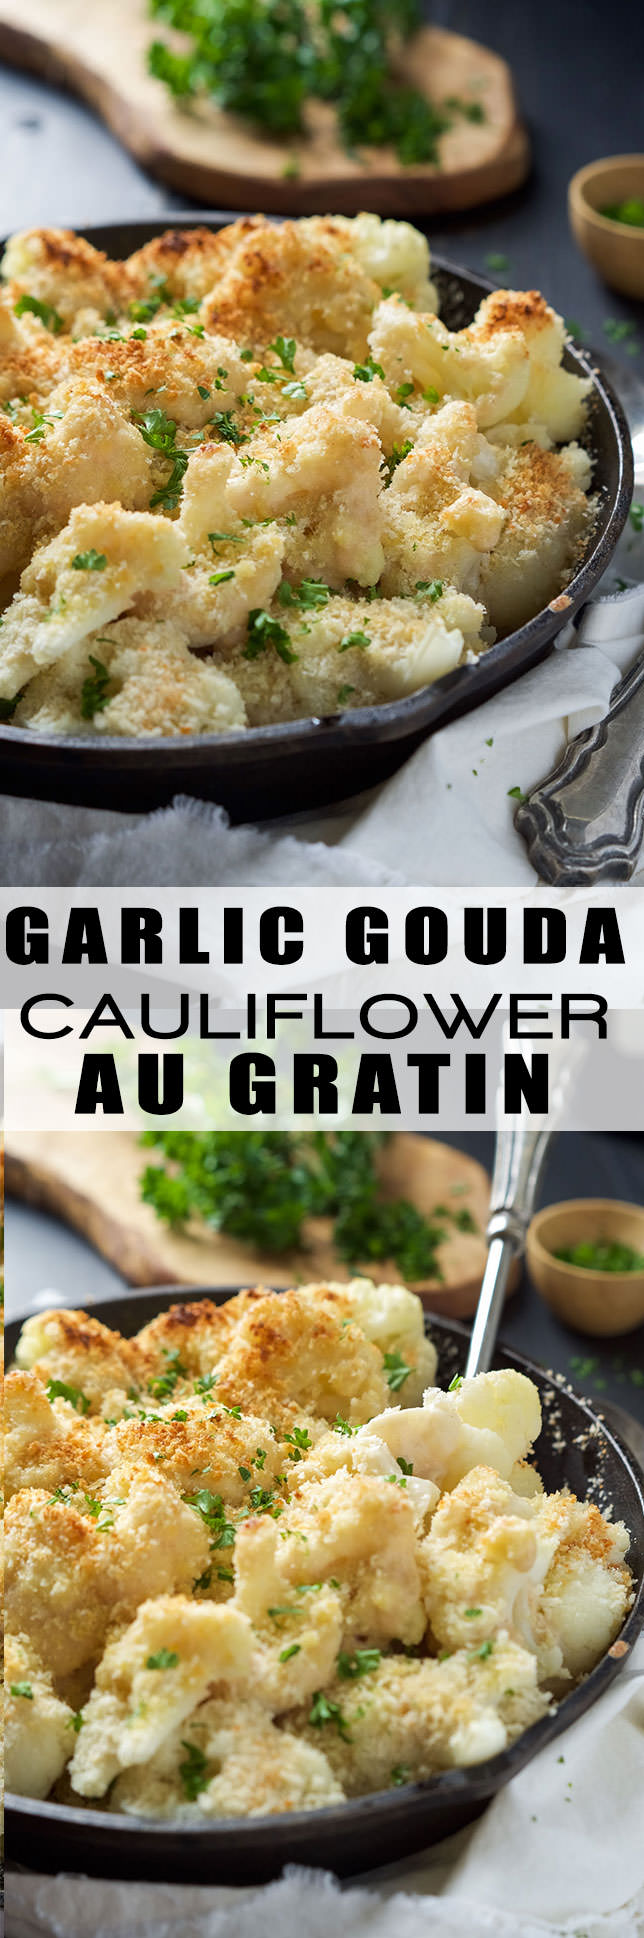 Garlic Gouda & Parmesan Cauliflower Au Gratin is the perfect side dish for you holiday table but easy enough for any weeknight dinner! Tender cauliflower blanketed in a double cheese sauce and crunchy panko topping!